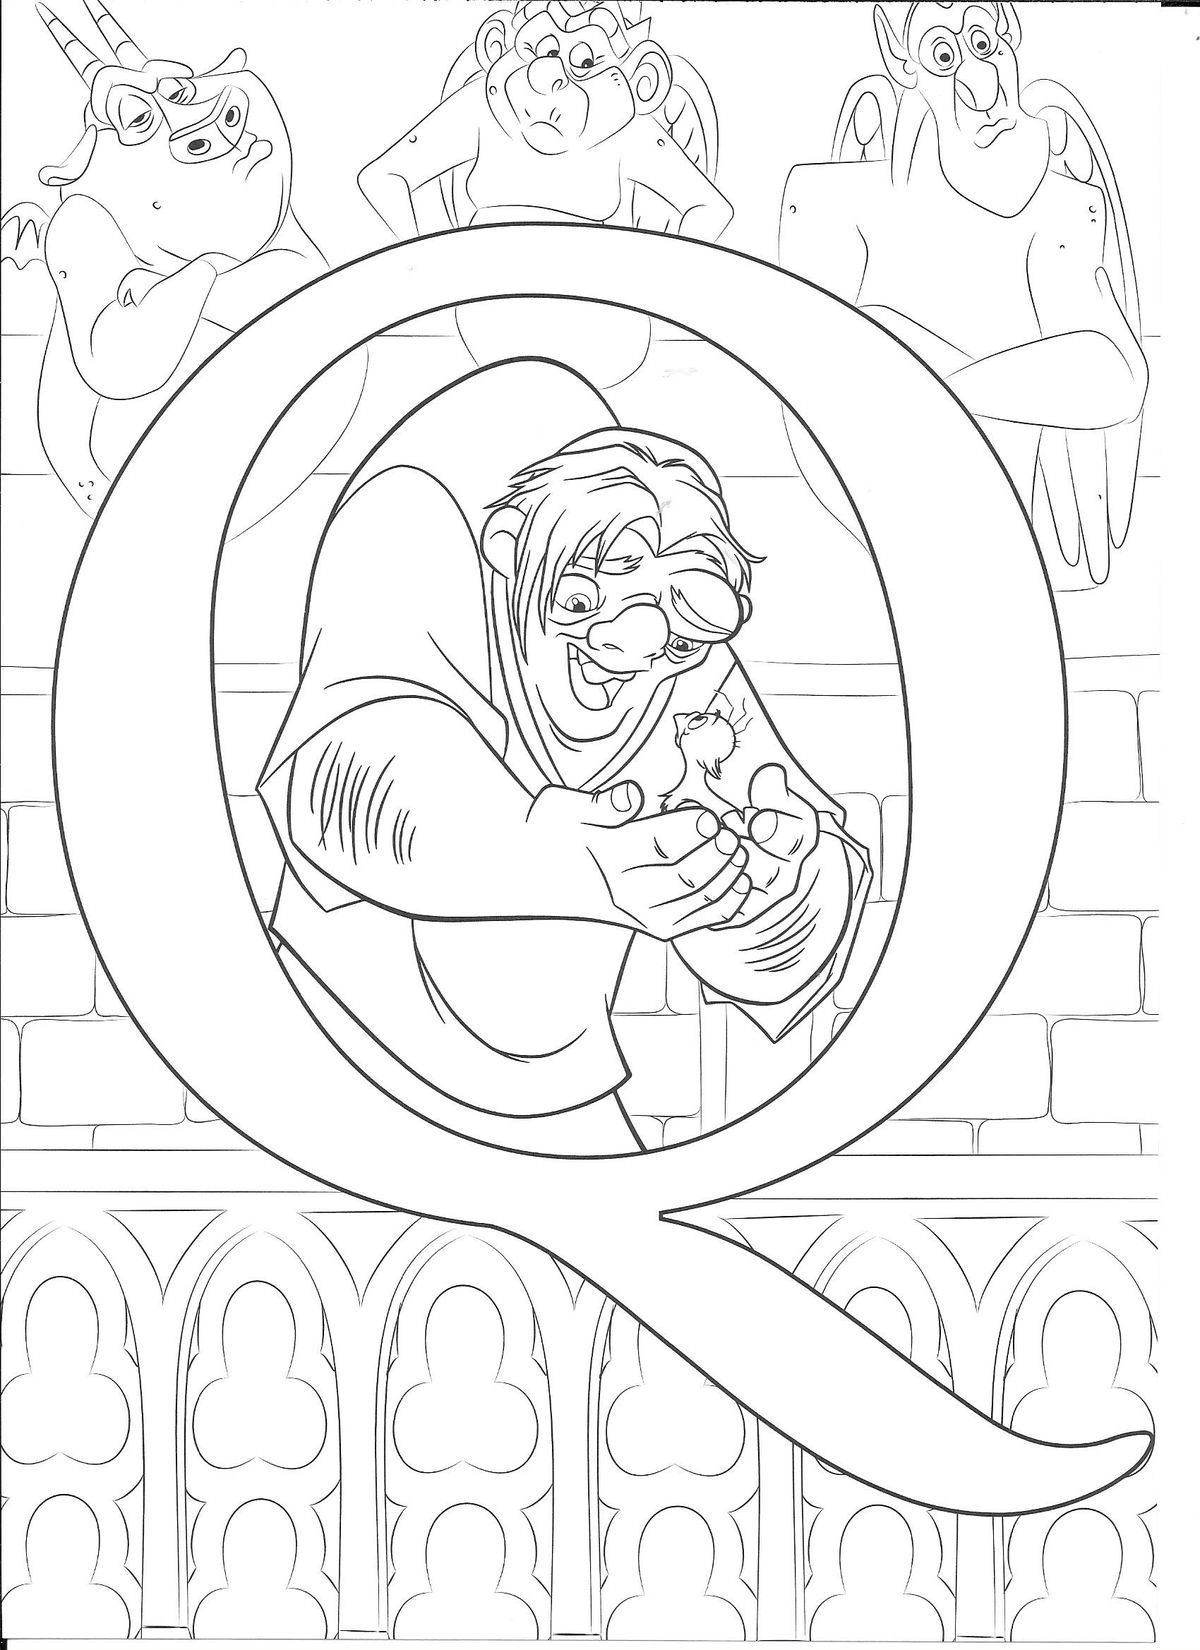 Pin By Mini On Alphabet Coloring Sheets With Images